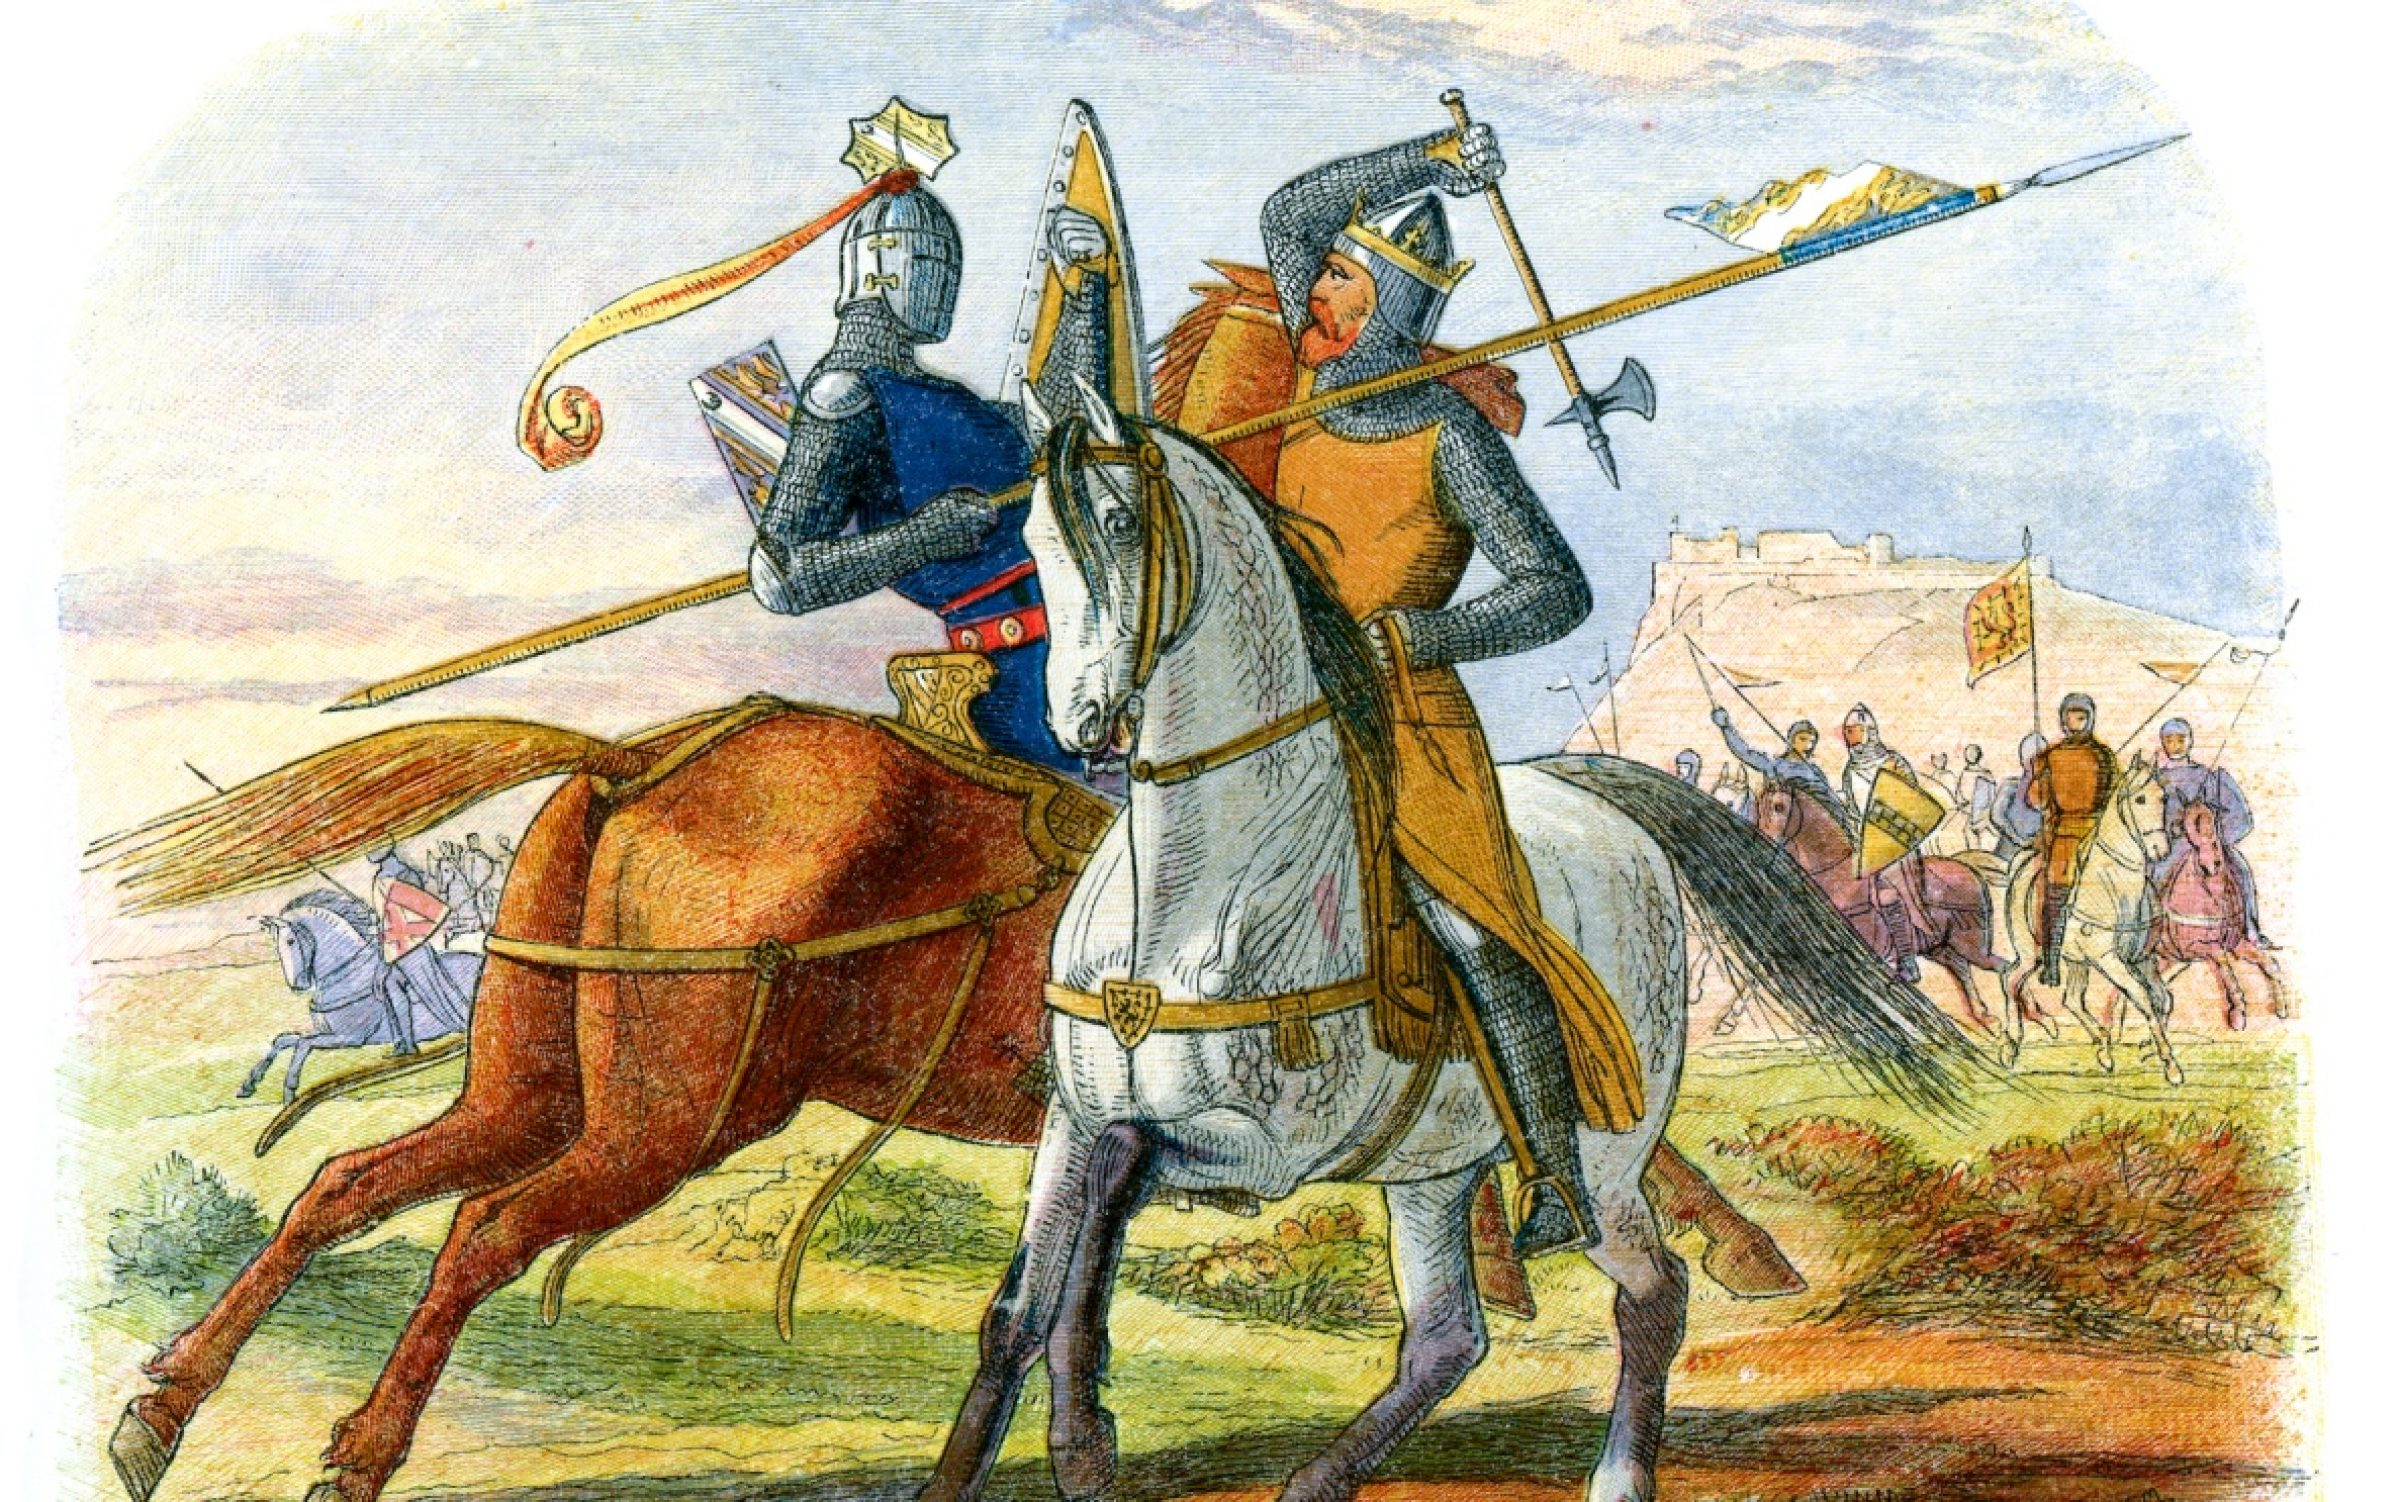 Picture of two knights on horses fight on a battlefield on the cover of a history book by R.J. Unstead